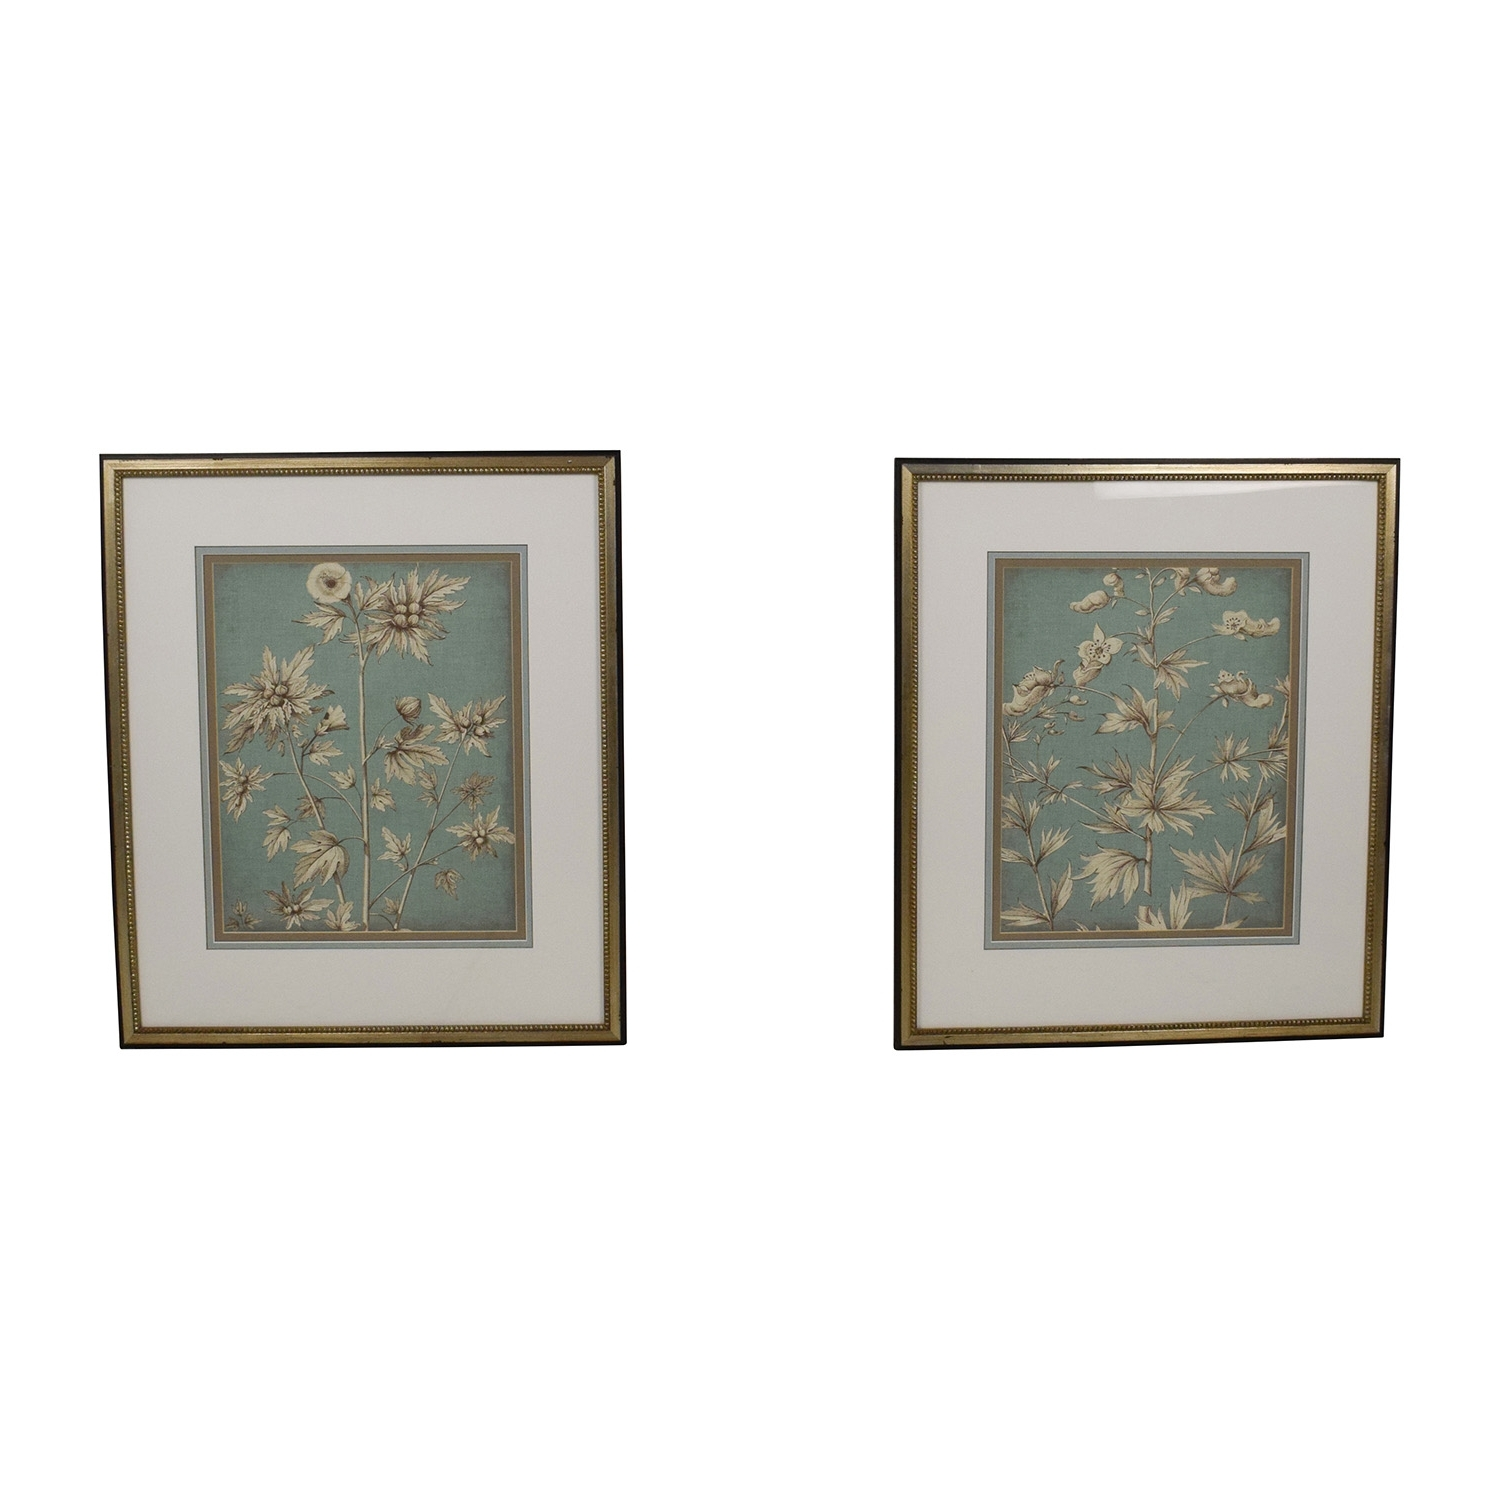 [%72% Off – Ethan Allen Ethan Allen Pair Of Decorative Floral Pertaining To Latest Ethan Allen Wall Art|ethan Allen Wall Art Throughout Well Liked 72% Off – Ethan Allen Ethan Allen Pair Of Decorative Floral|favorite Ethan Allen Wall Art Inside 72% Off – Ethan Allen Ethan Allen Pair Of Decorative Floral|widely Used 72% Off – Ethan Allen Ethan Allen Pair Of Decorative Floral Pertaining To Ethan Allen Wall Art%] (View 9 of 15)